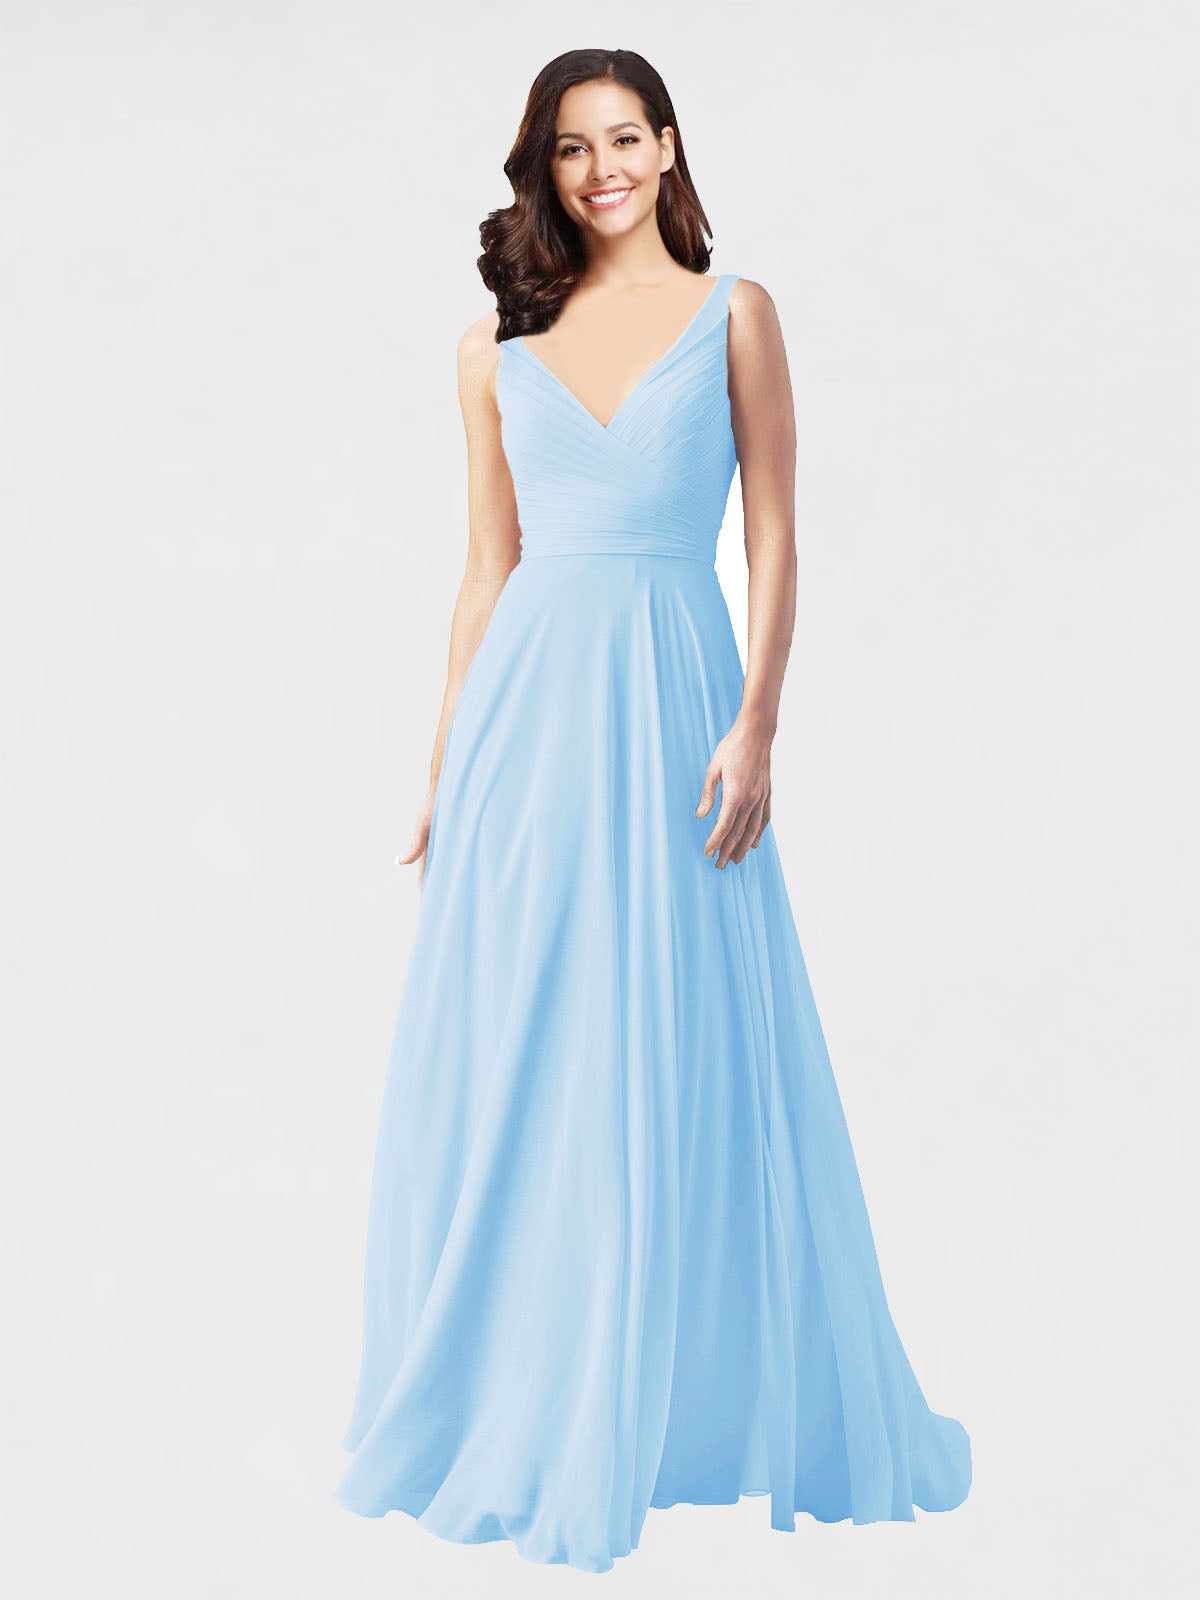 Long A-Line V-Neck Sleeveless Light Sky Blue Chiffon Bridesmaid Dress Bernice